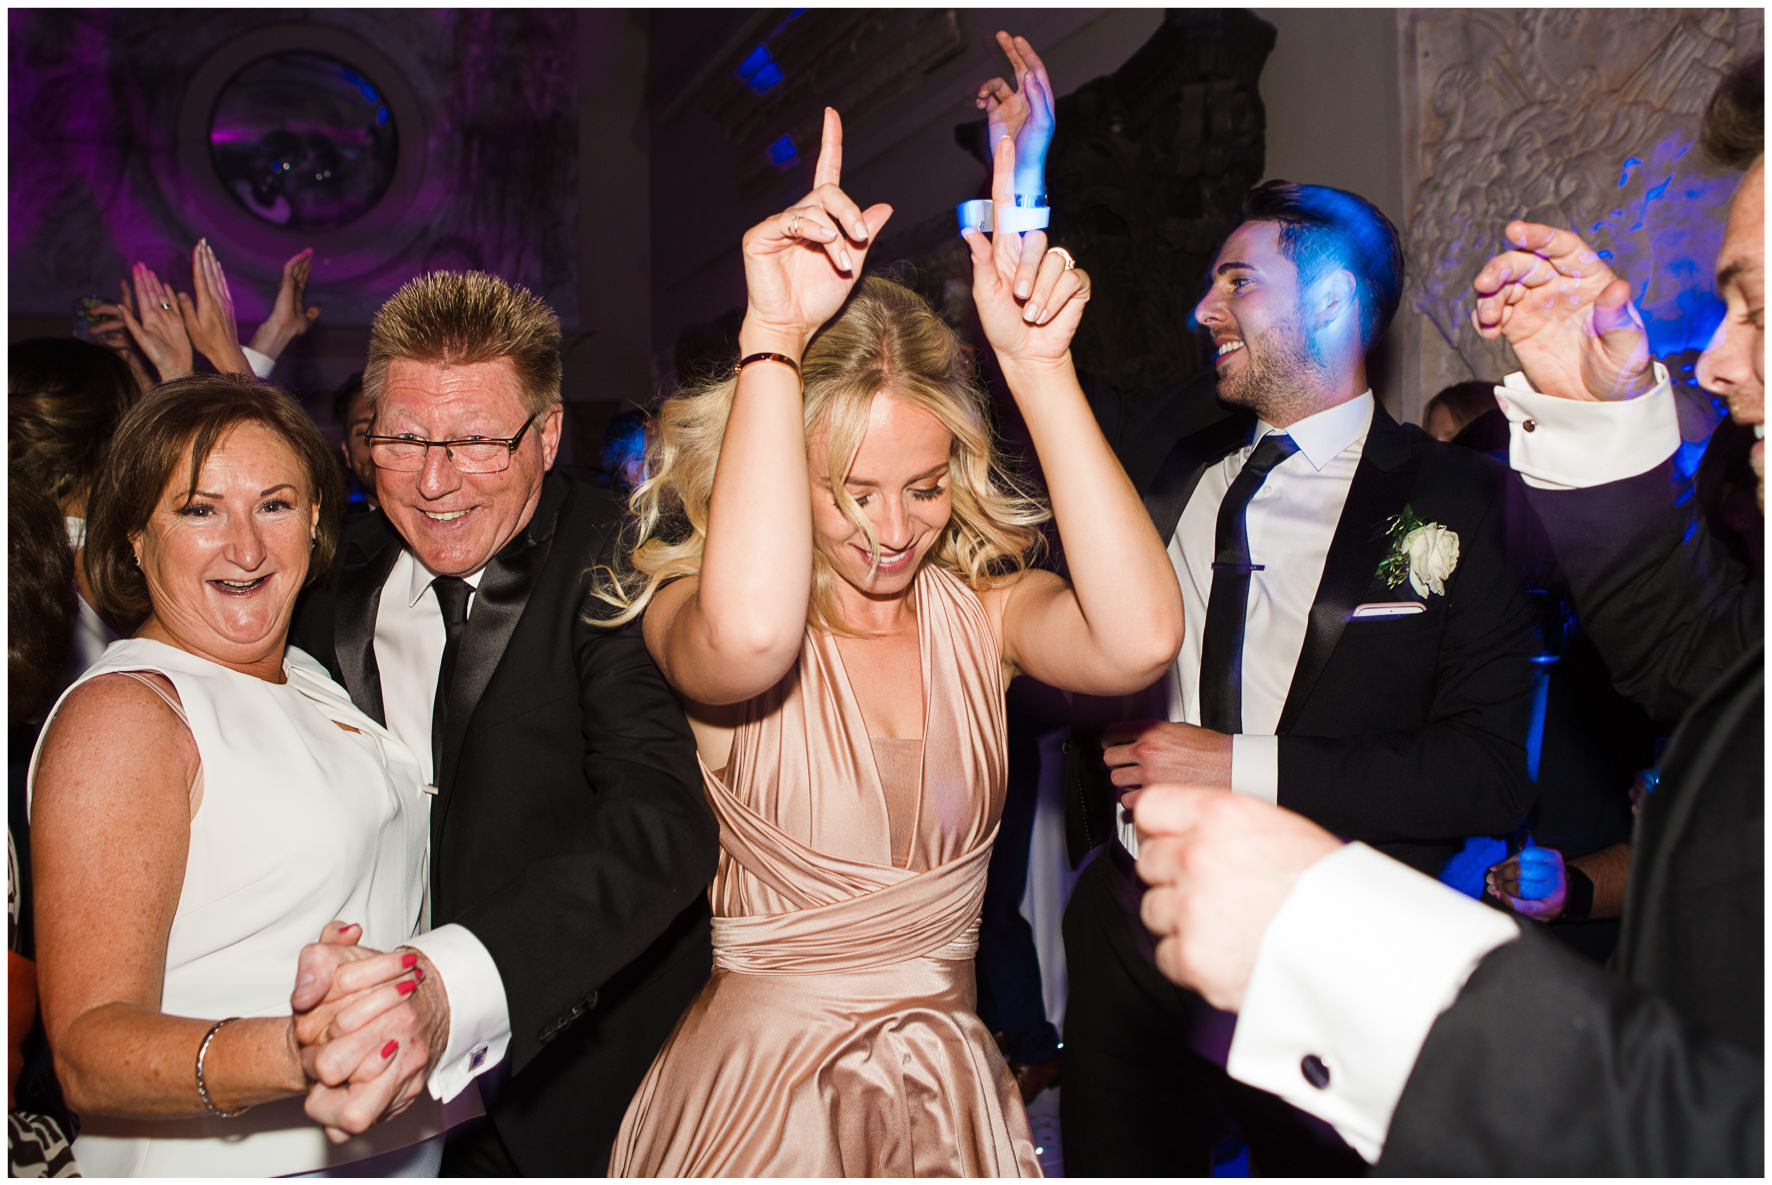 Lucy Davenport Photography, Aynhoe Park, Oxfordshire, wedding venue, Rock My Wedding, orangery, bridesmaid dancing